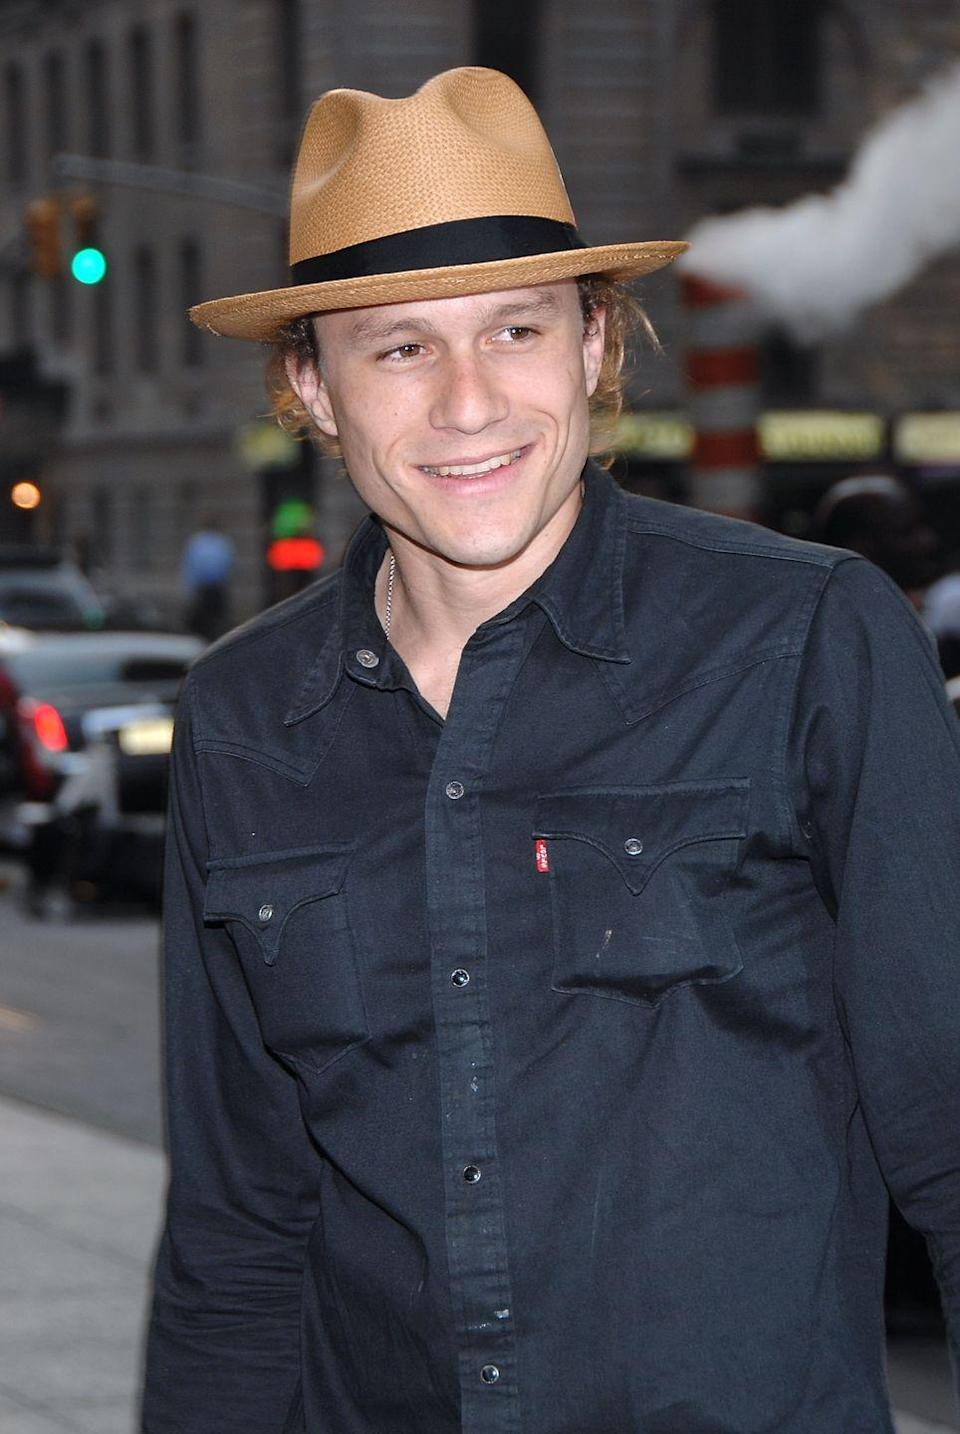 <p>Heath Ledger was hailed for his incredible performances in films like <em>Brokeback Mountain</em> and <em>The Patriot</em>. He took on the Joker in <em>The Dark Knight</em>, but tragically passed away before it was released. He was posthumously awarded the Academy Award for Best Supporting Actor for his performance.</p>